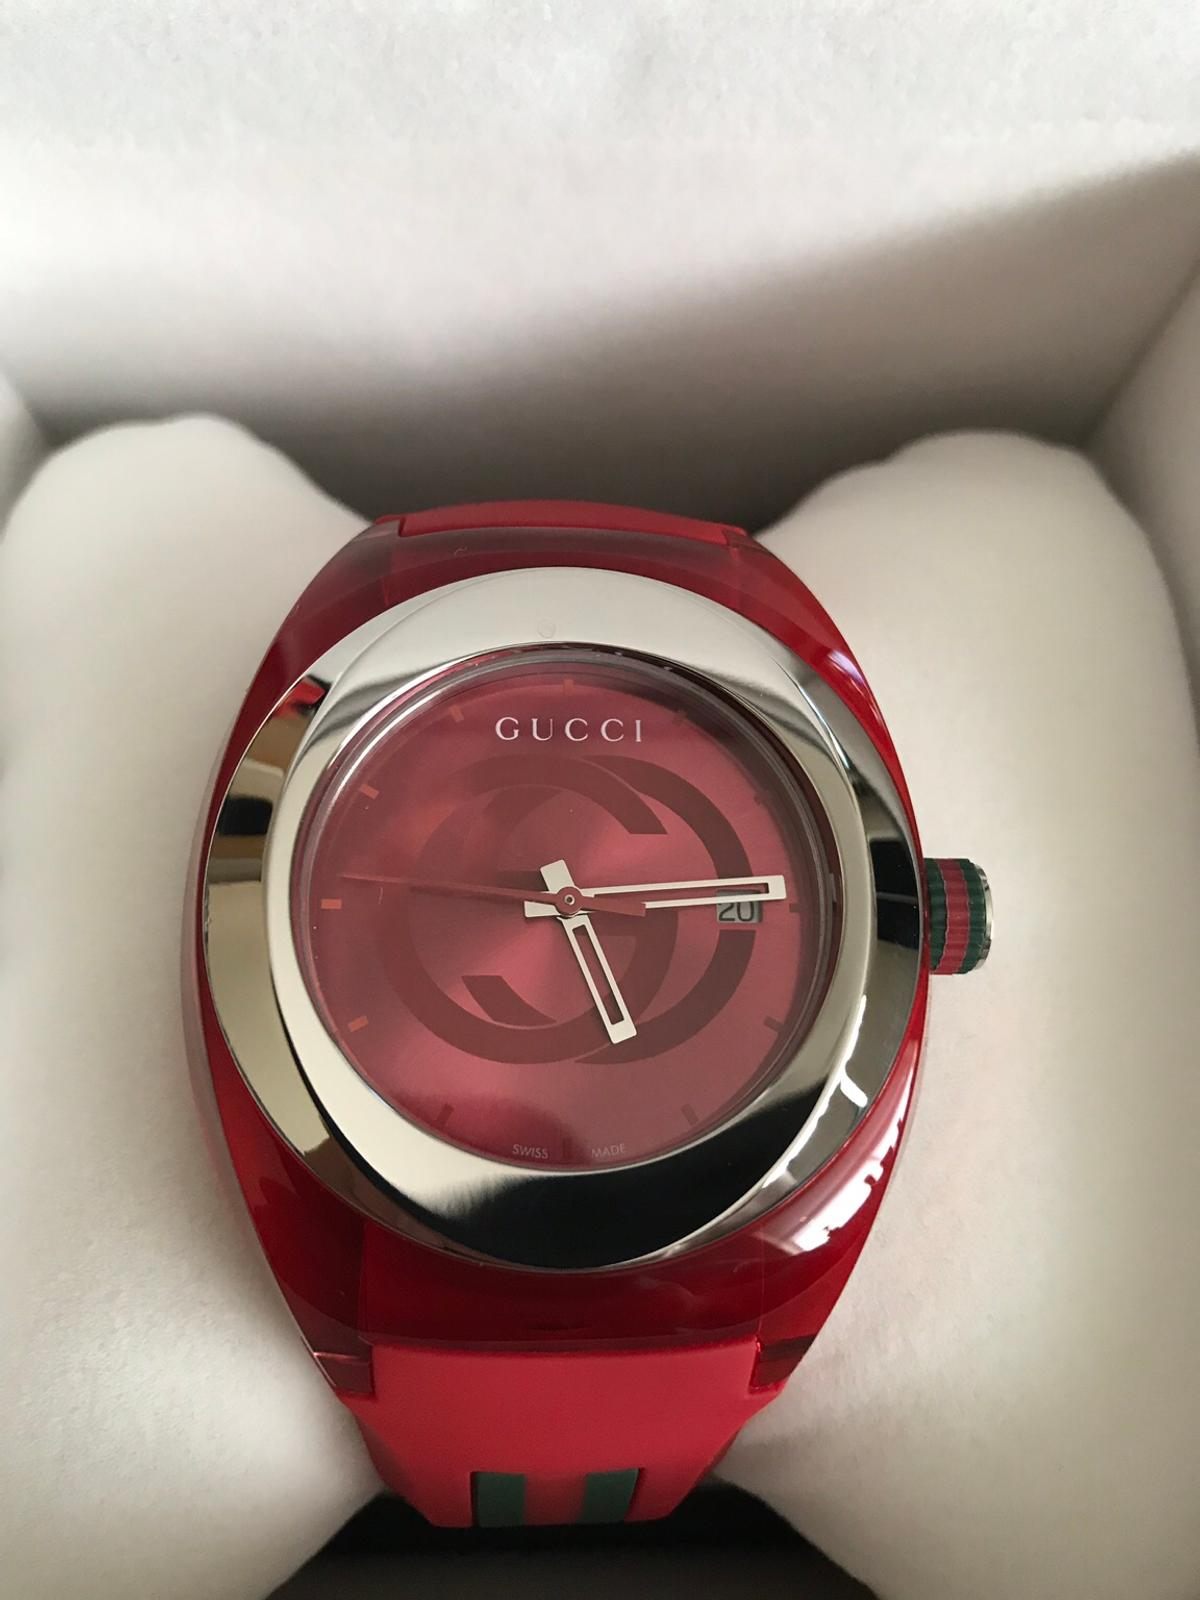 89970563fa0 Gucci Sync watch 46mm in TW16 Spelthorne for £160.00 for sale - Shpock